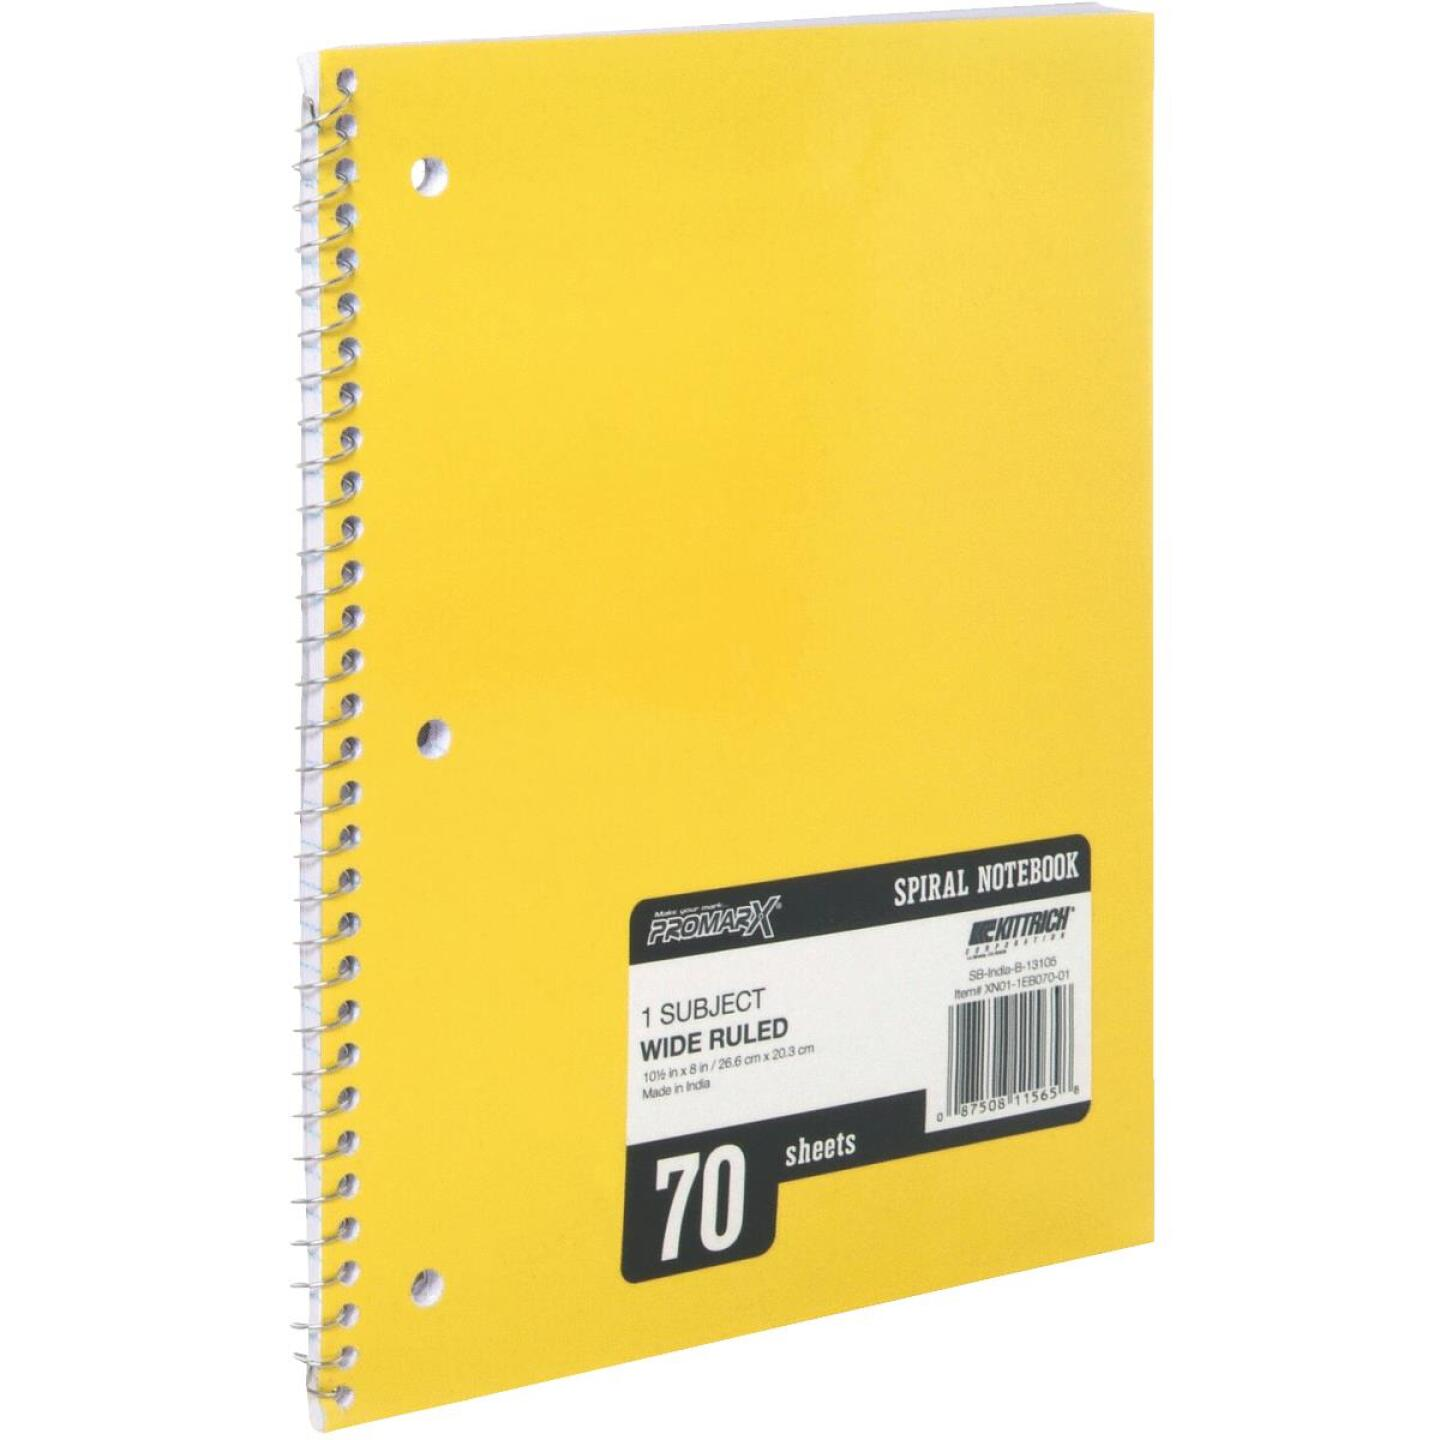 ProMark 8-1/4 In. W. x 10-1/2 In. H. 70-Sheet Side-Spiral Notebook Image 1